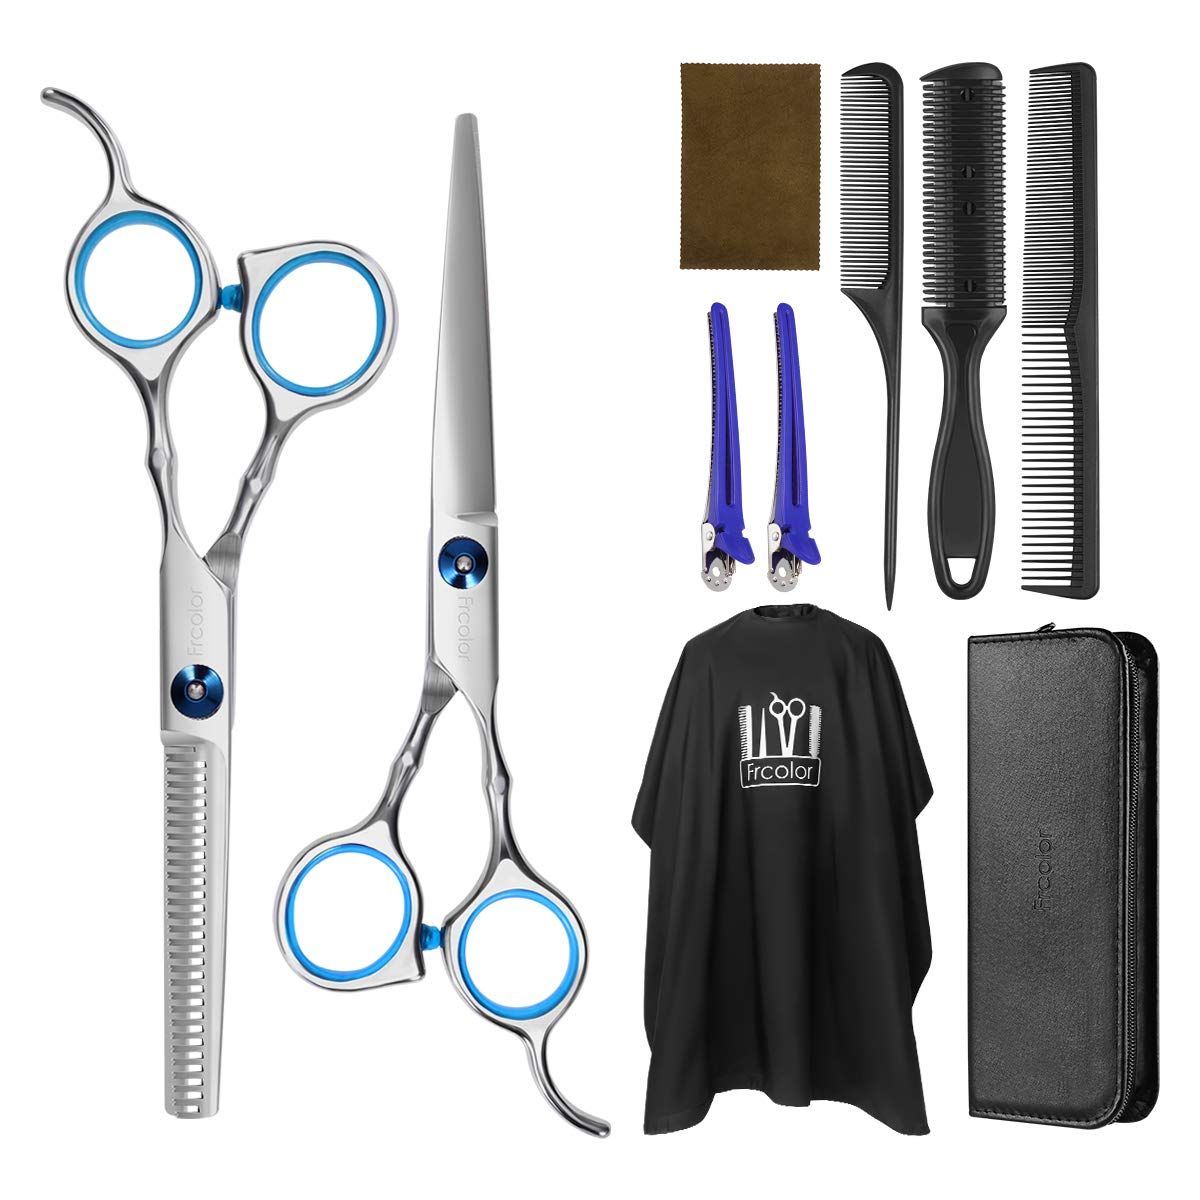 Frcolor Hair Cutting Scissors Hairdressing Thinning Shears Kit with Barber Cape Hair Thinning Cutting Combs and Black Case,Professional Upgraded Haircut Set by FRCOLOR